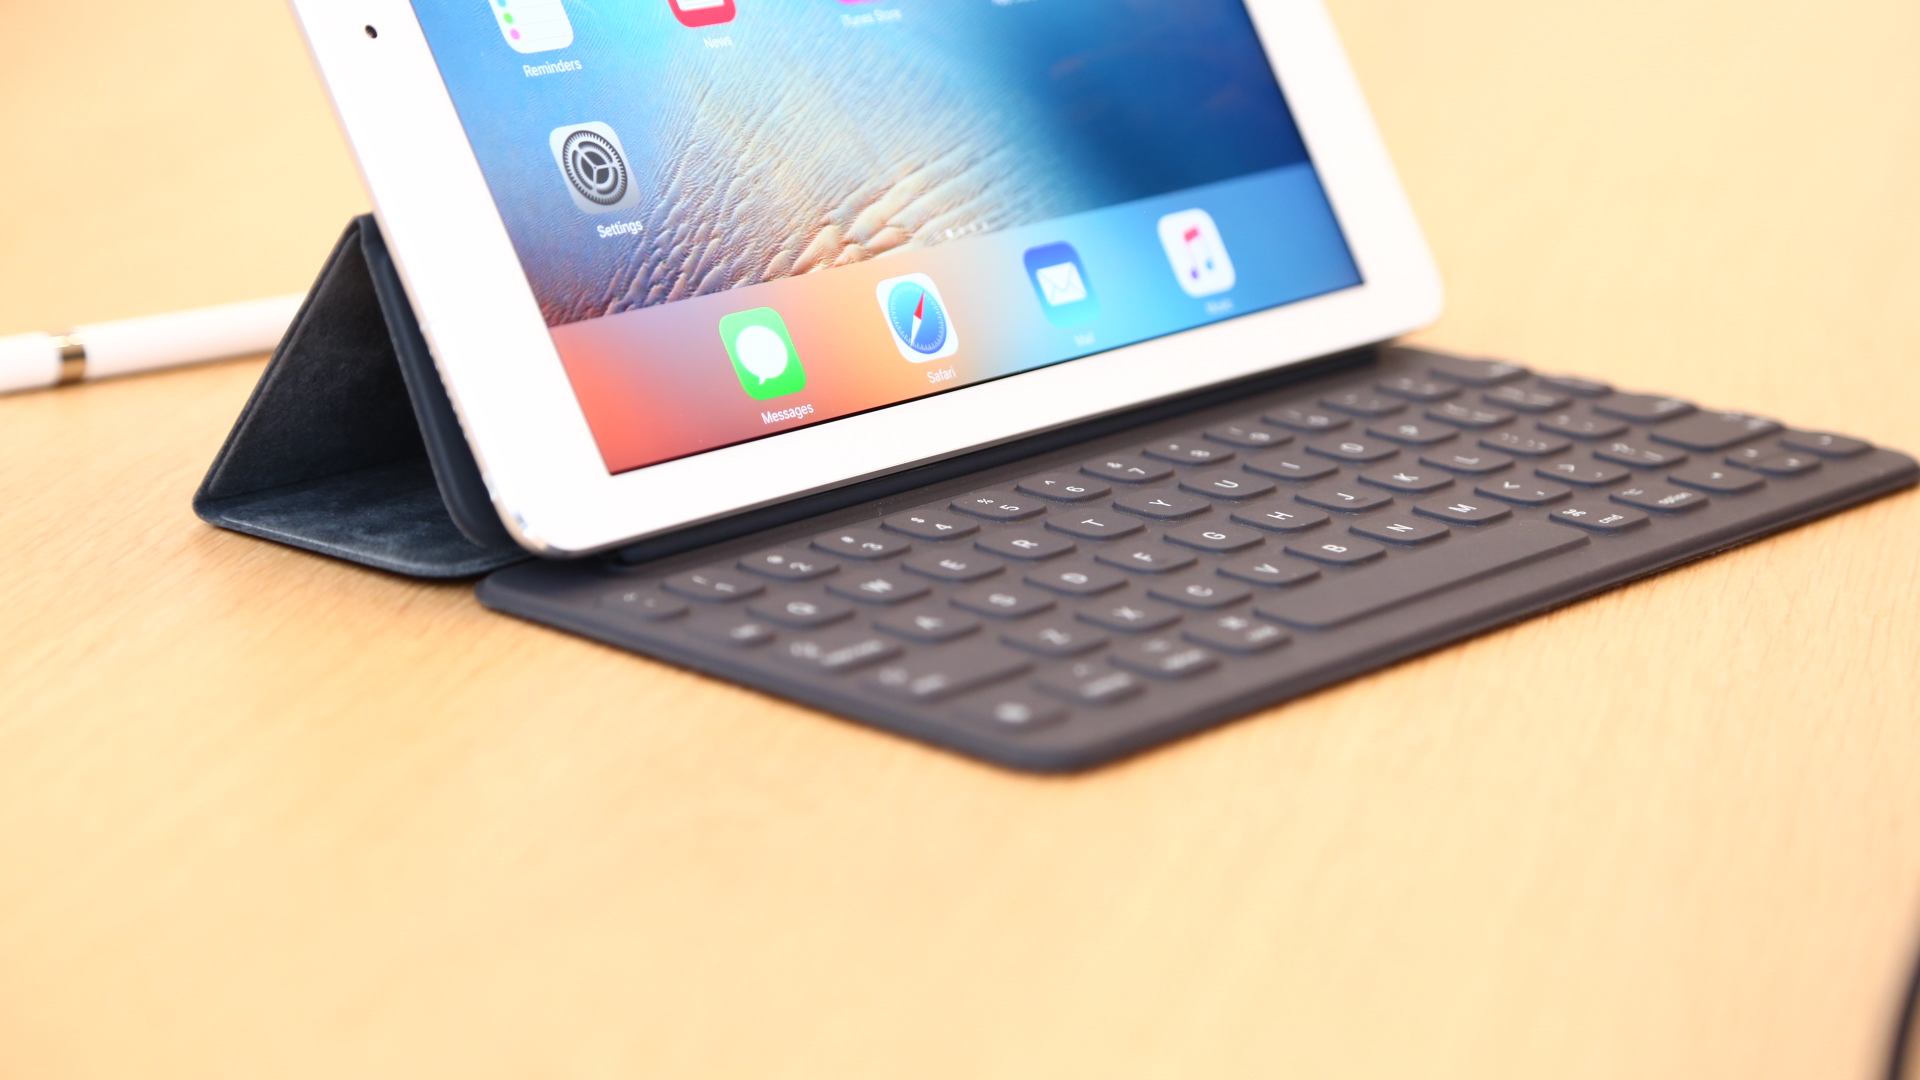 The new iPad Pro were weaker than the 12.9-inch model